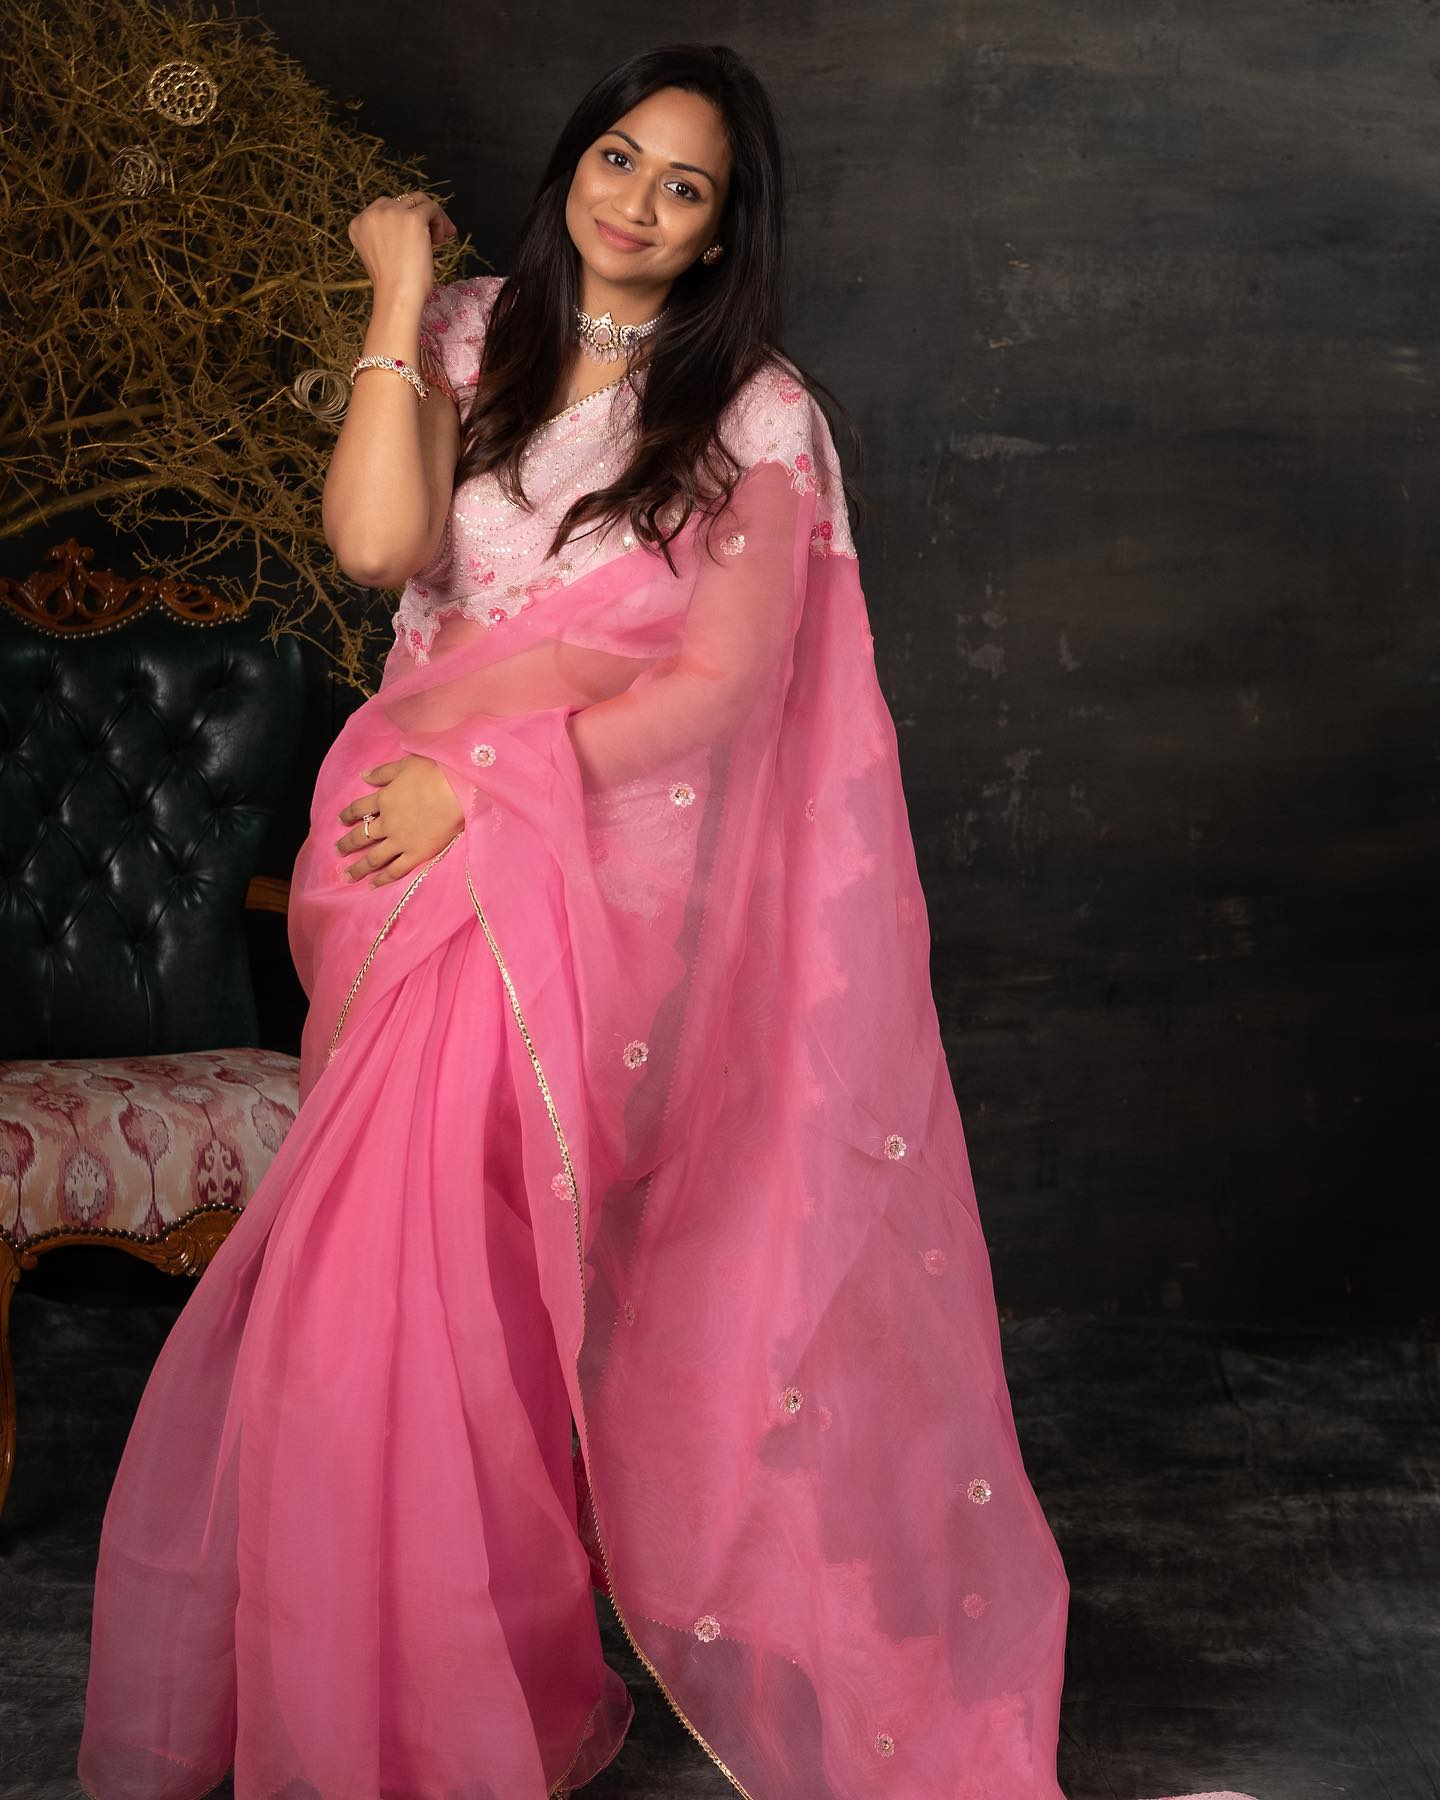 Beautiful blush pink color designer saree and blouse with hand embroidery work.  2021-07-15